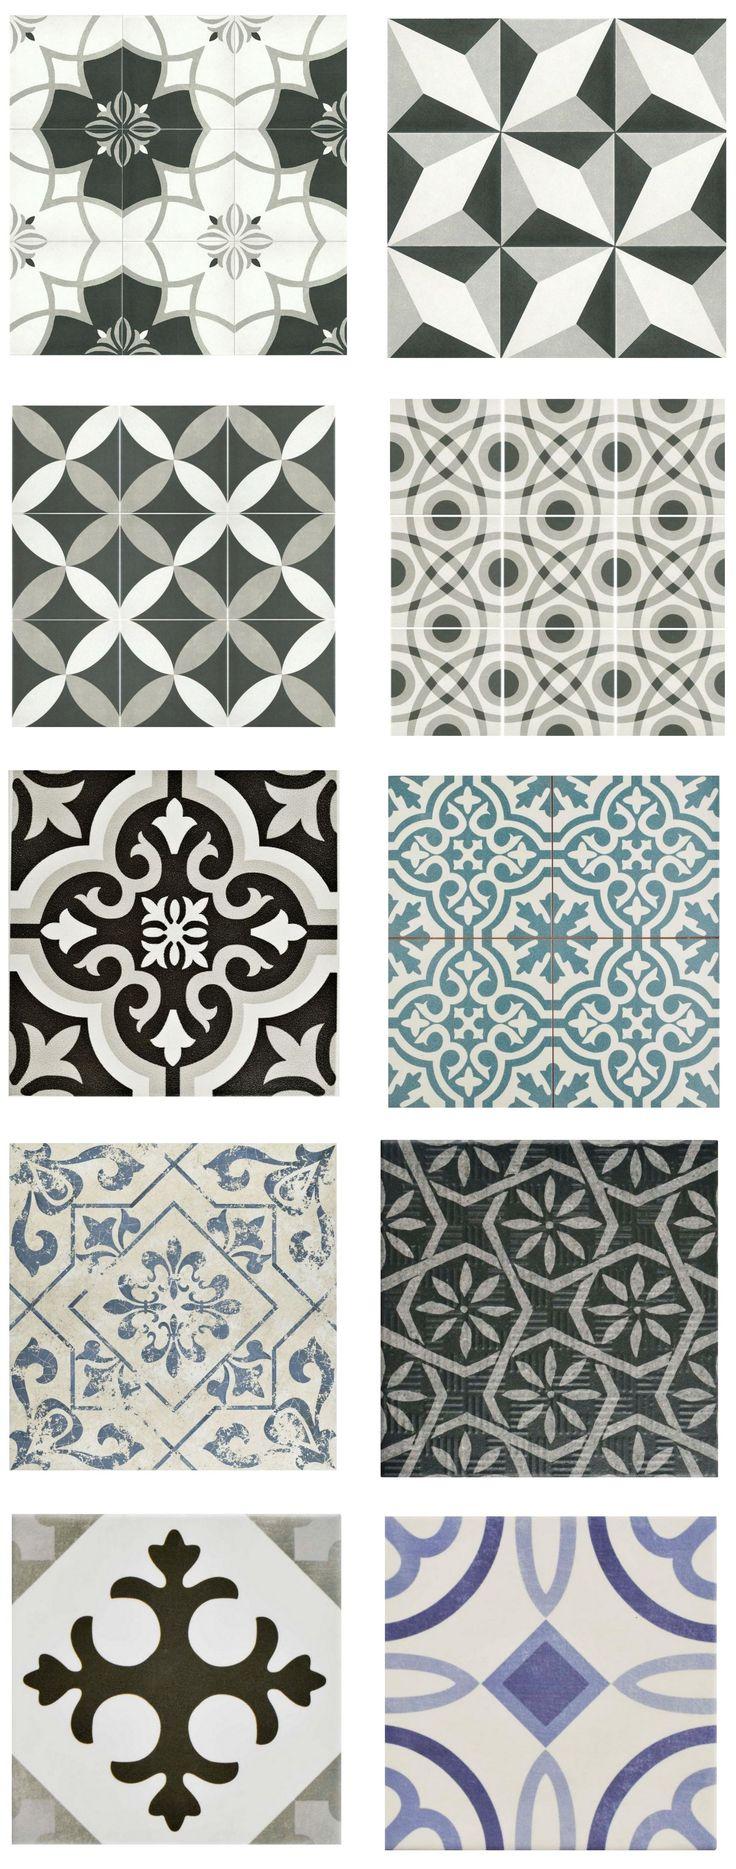 best 20 tile floor patterns ideas on pinterest spanish tile row left cement look tile home depot